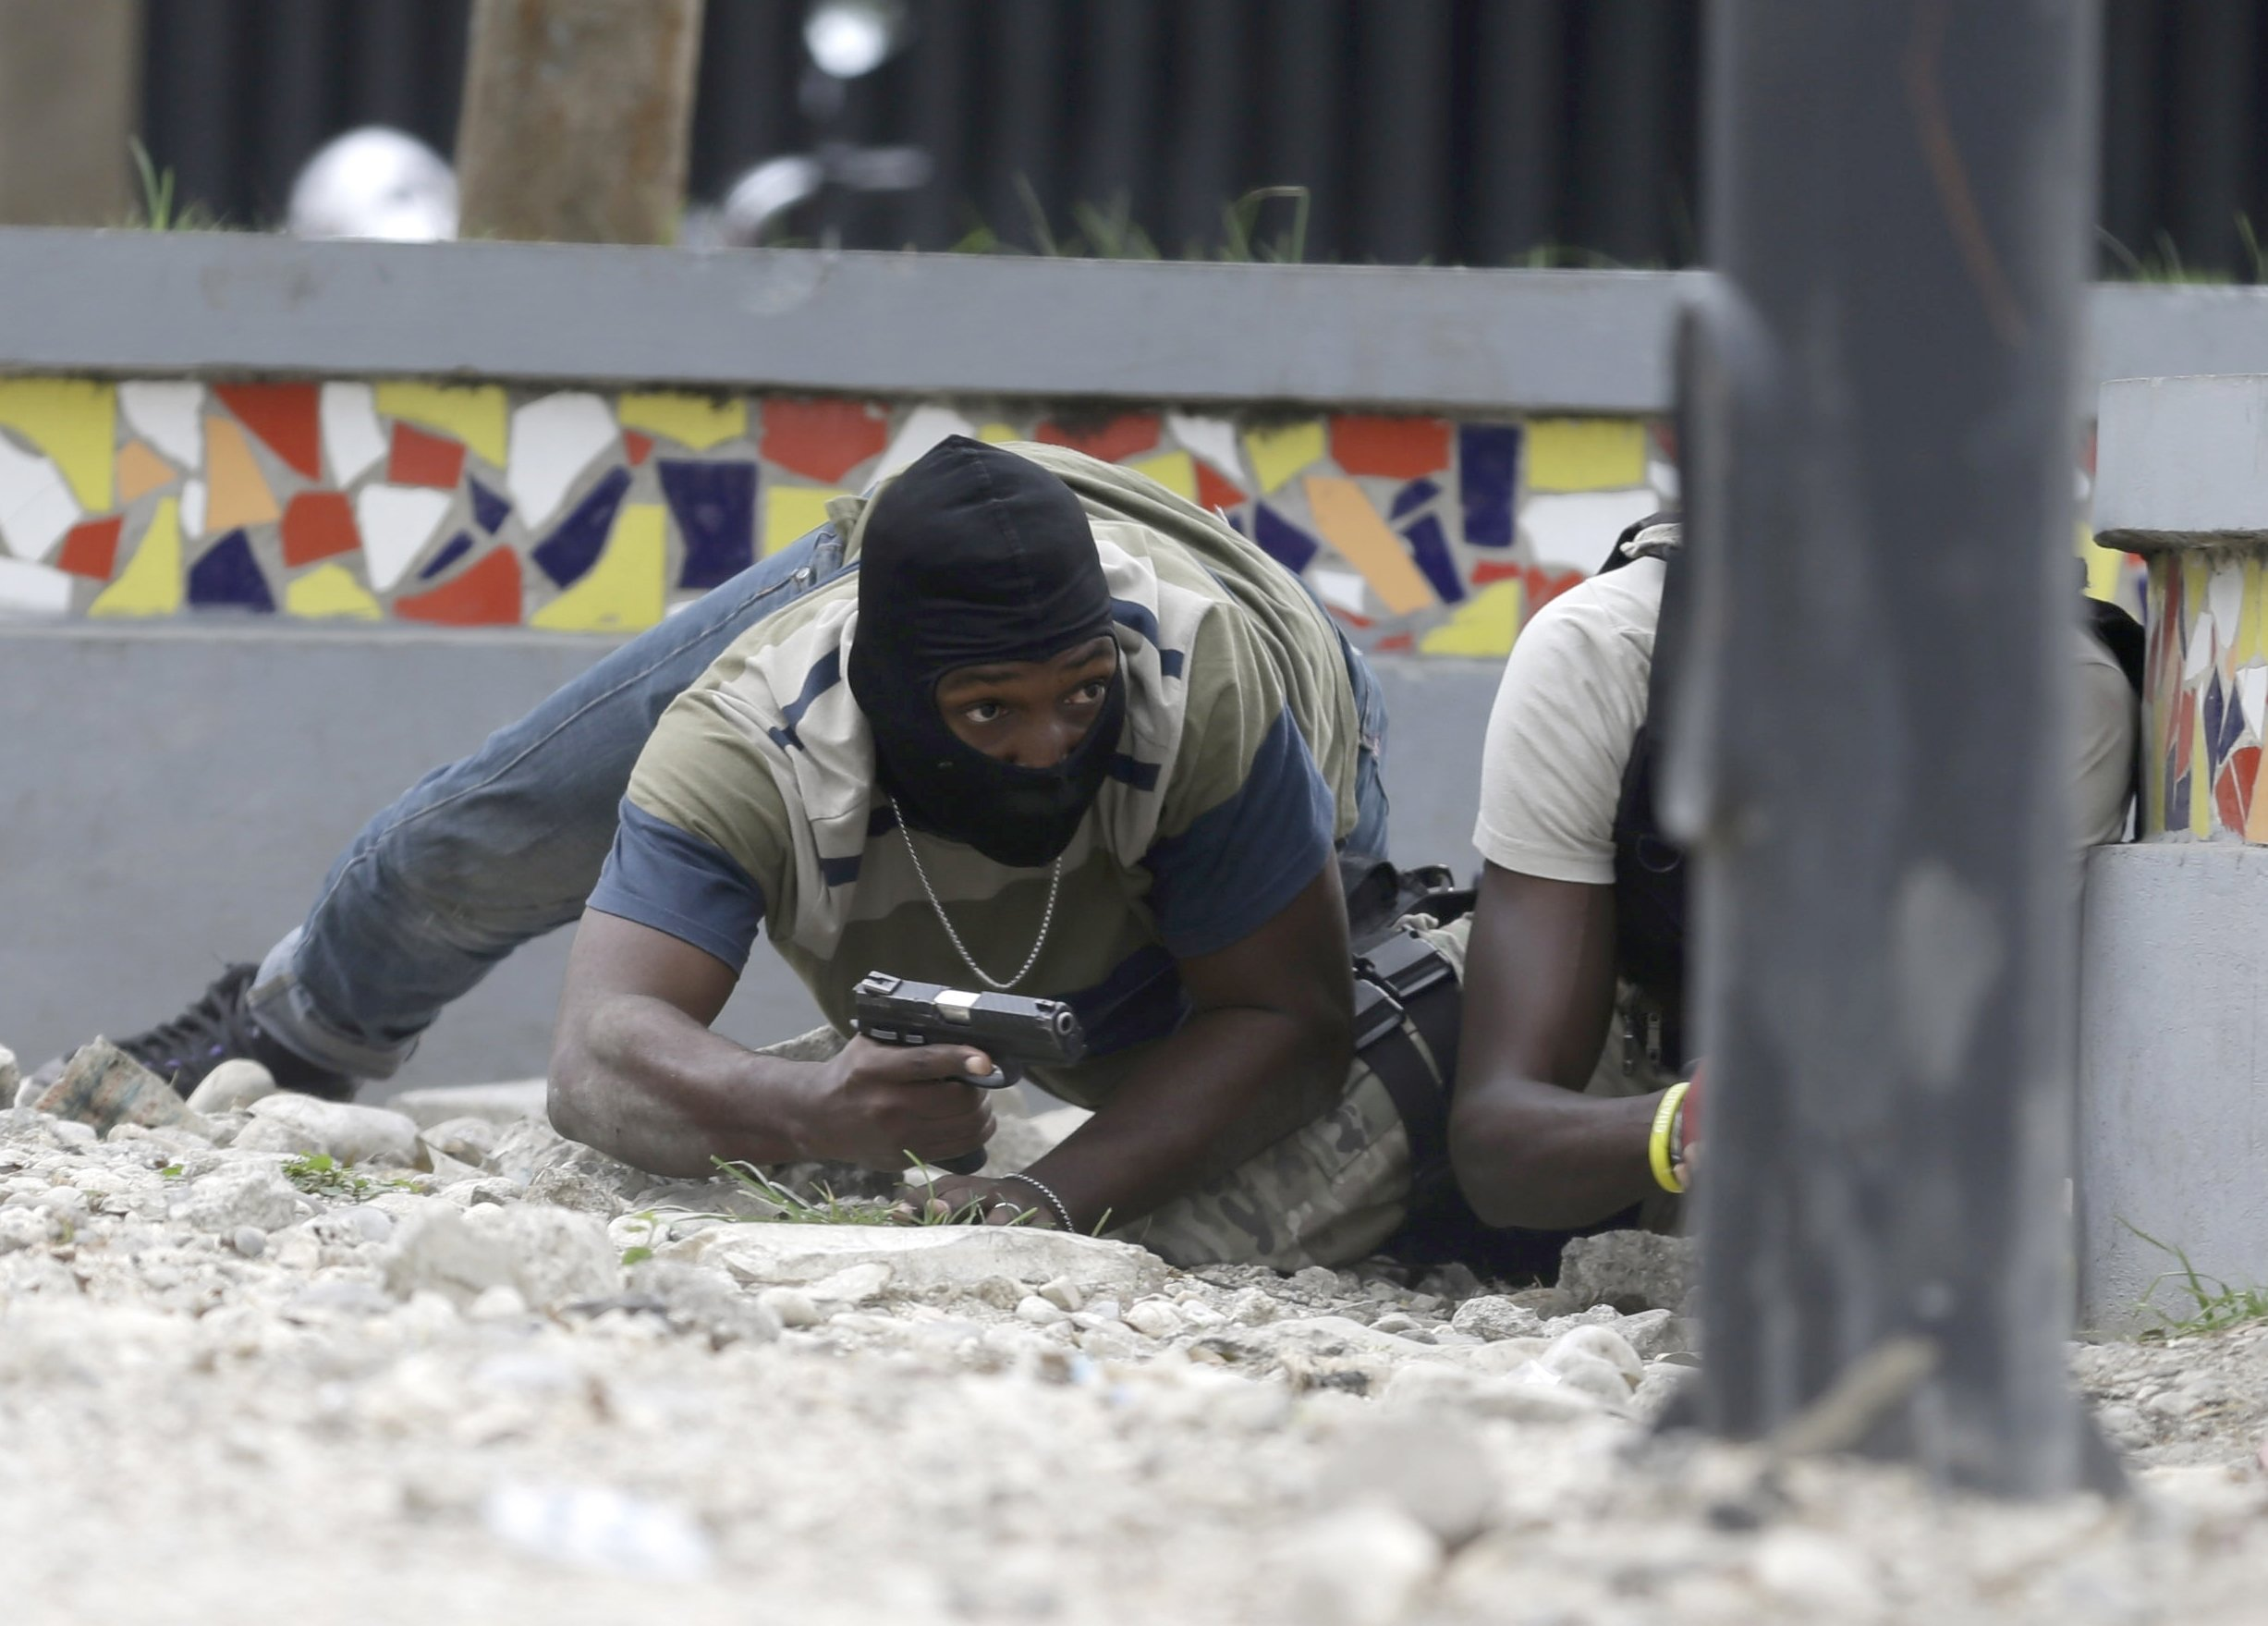 Haiti says soldier died of wounds after shootout with police